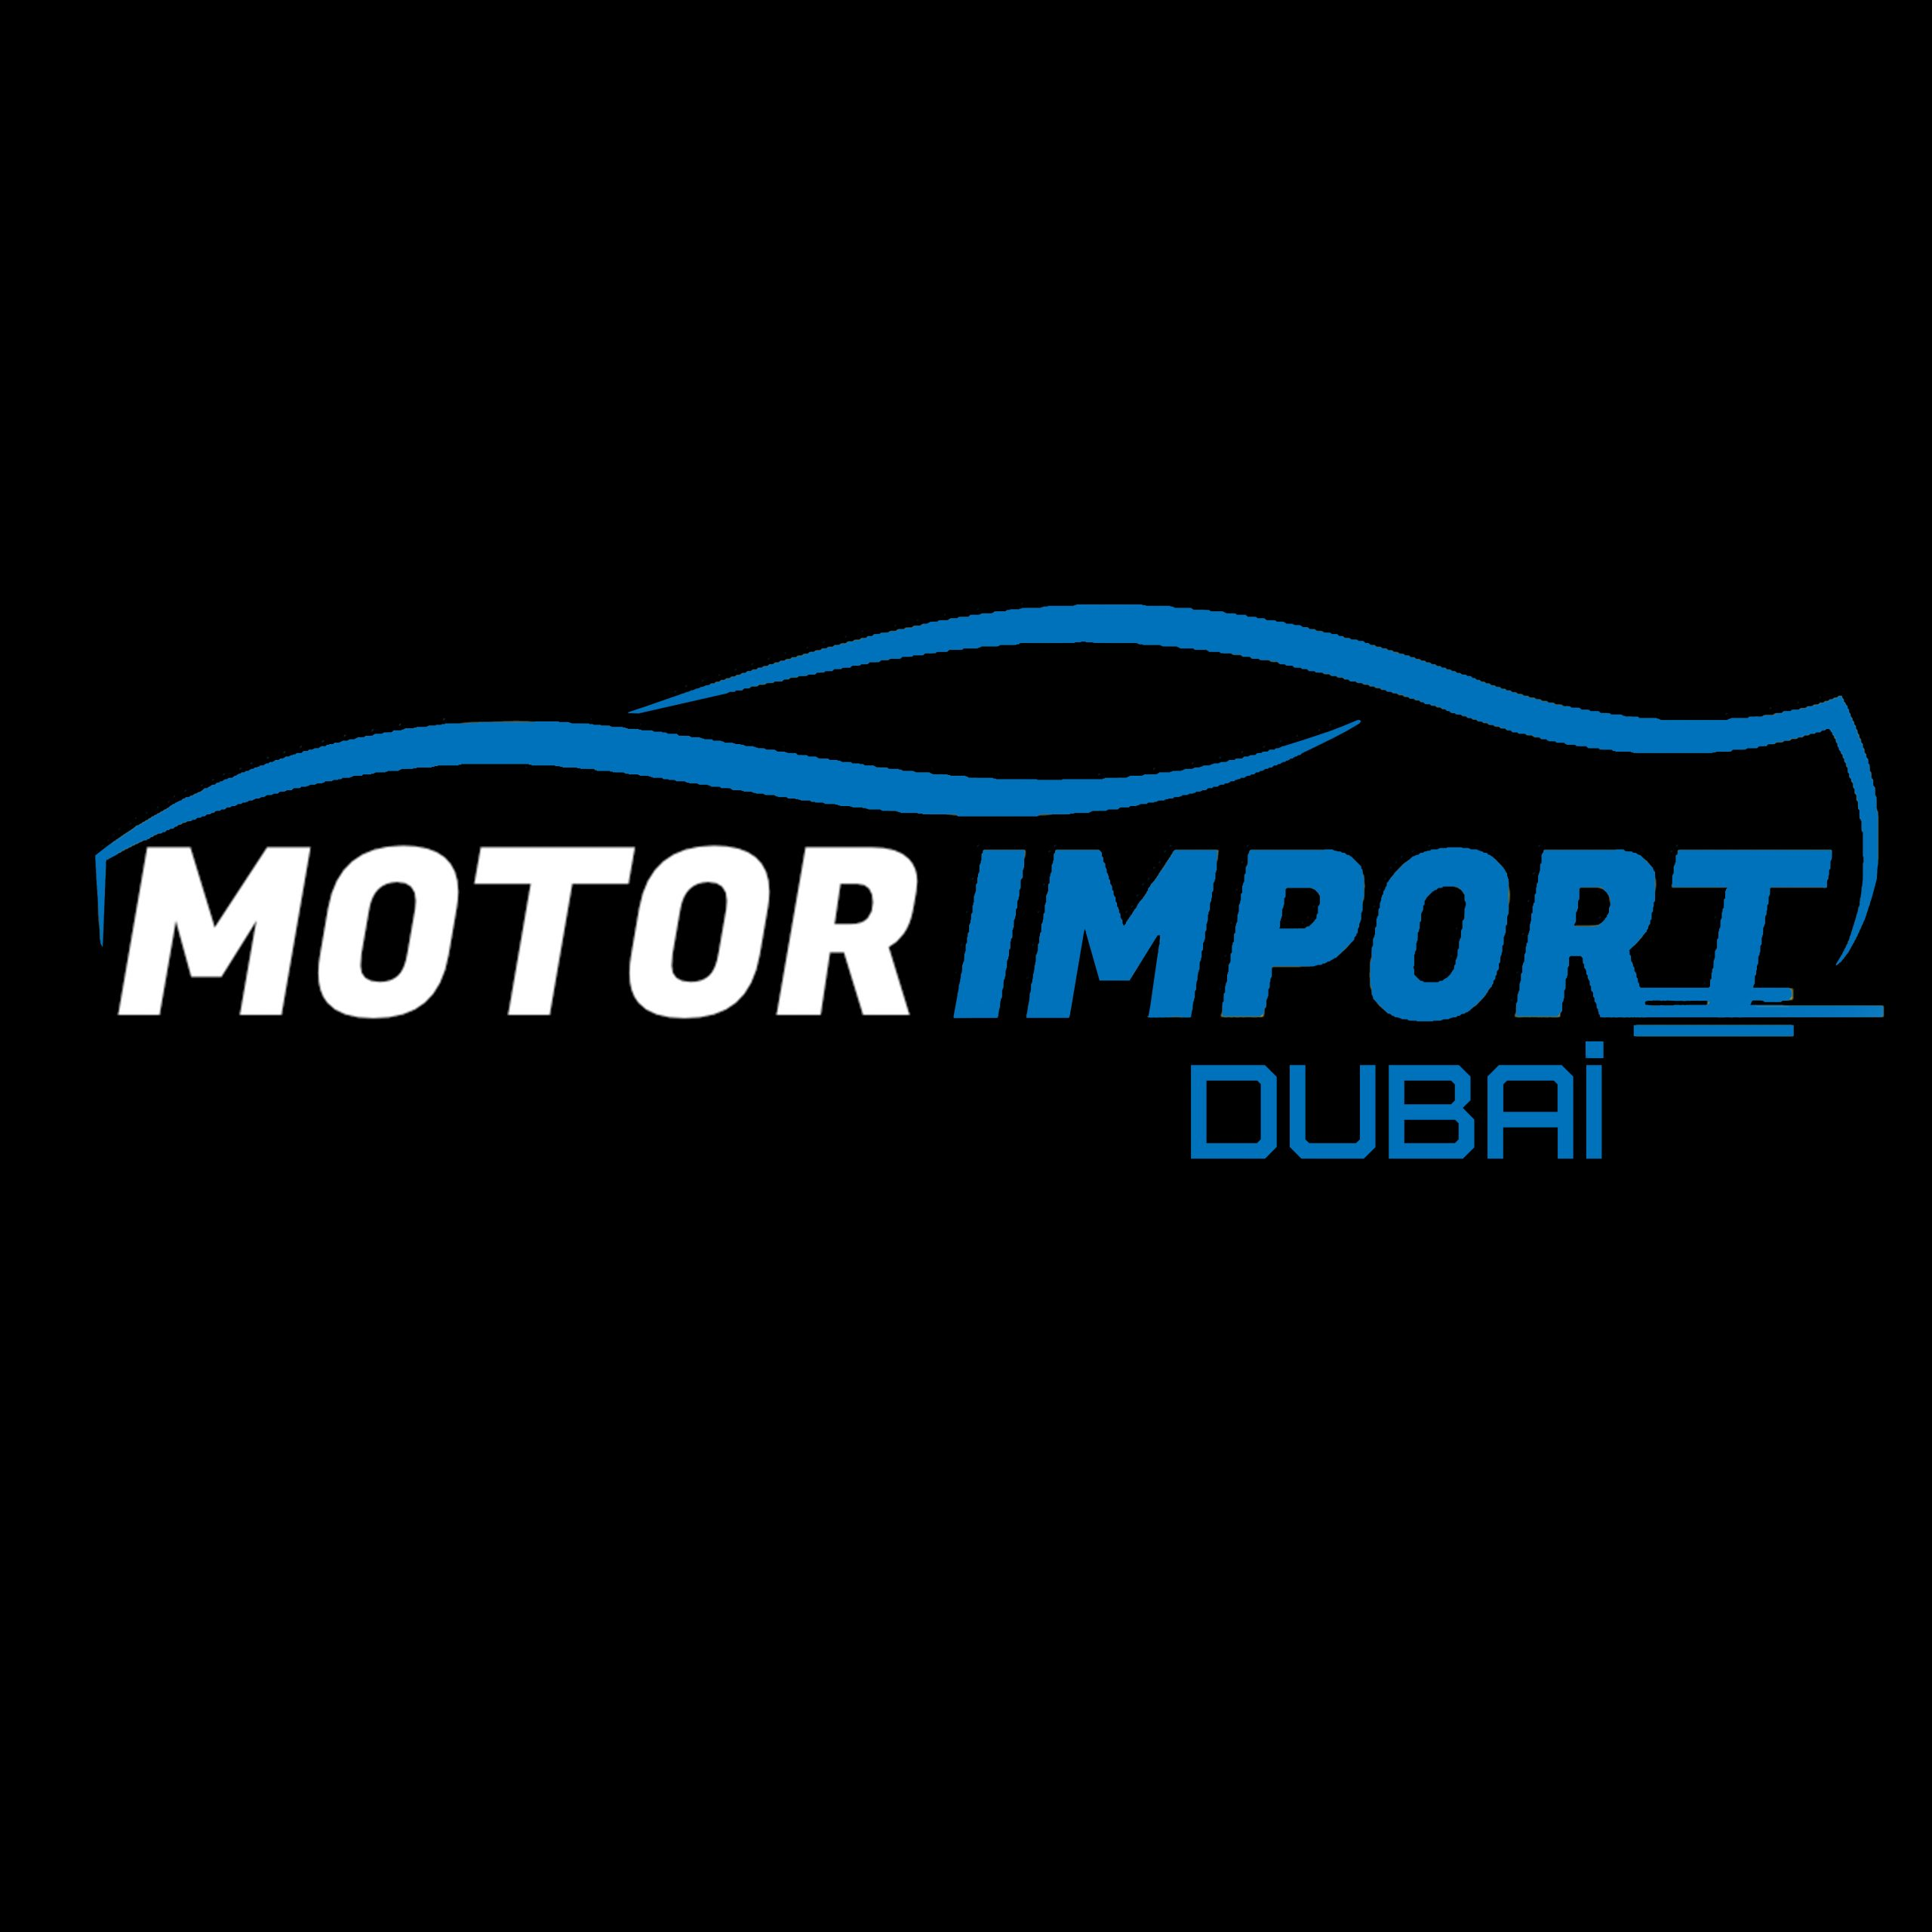 SQUARE EMPTYMOTOR IMPORT DUBAI scaled - RENAULT Japon importation voiture du Japon RENAULT importation vehicule Japon motorimport Tokyo